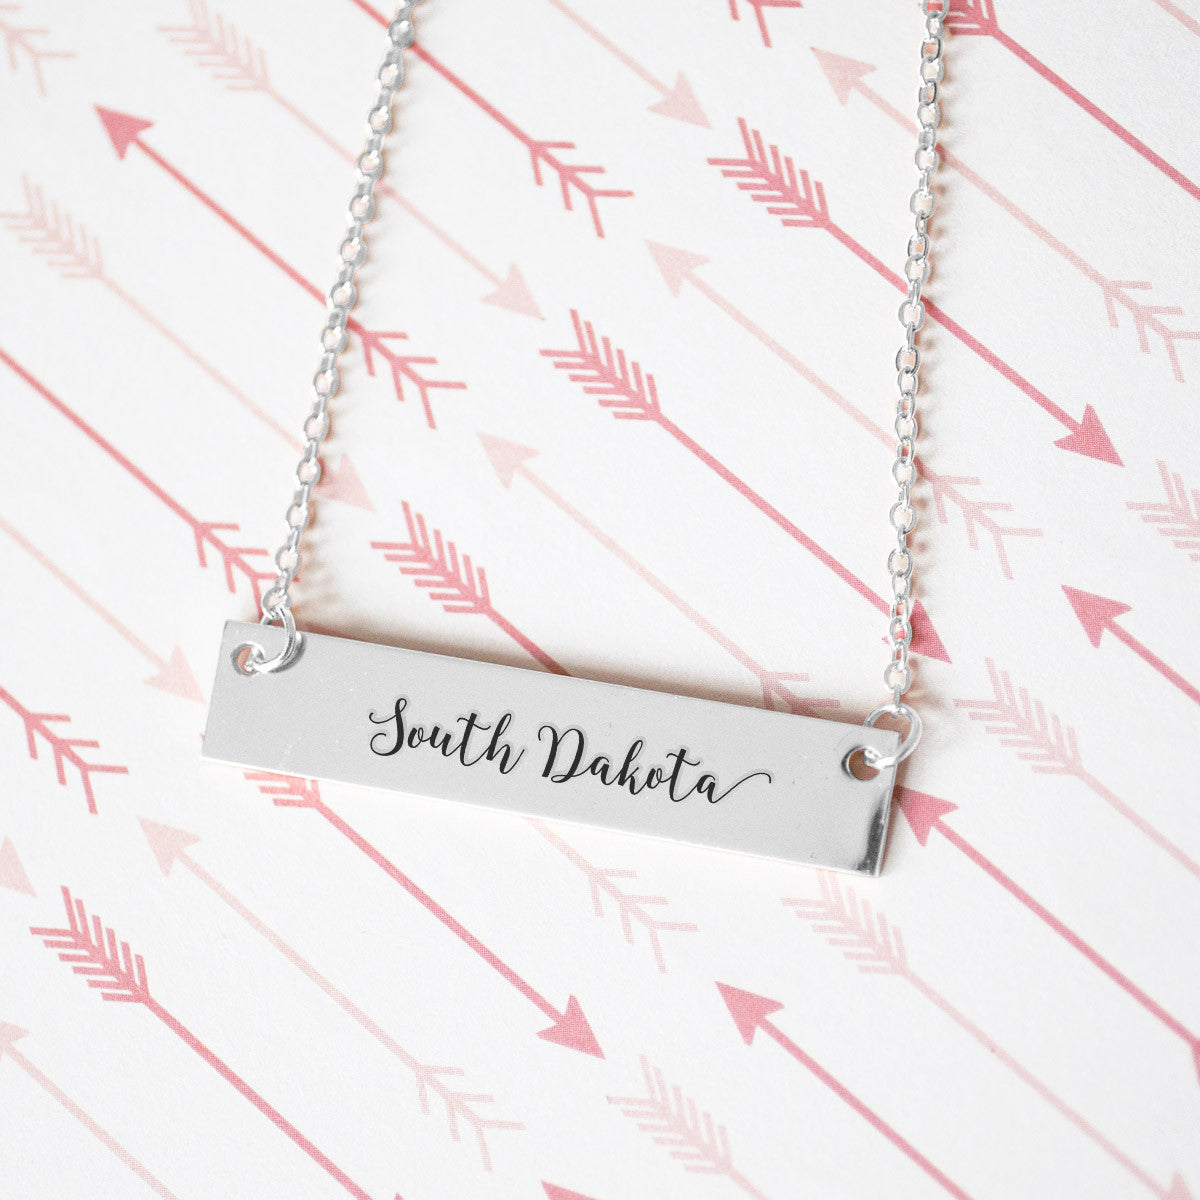 South Dakota Gold / Silver Bar Necklace - pipercleo.com